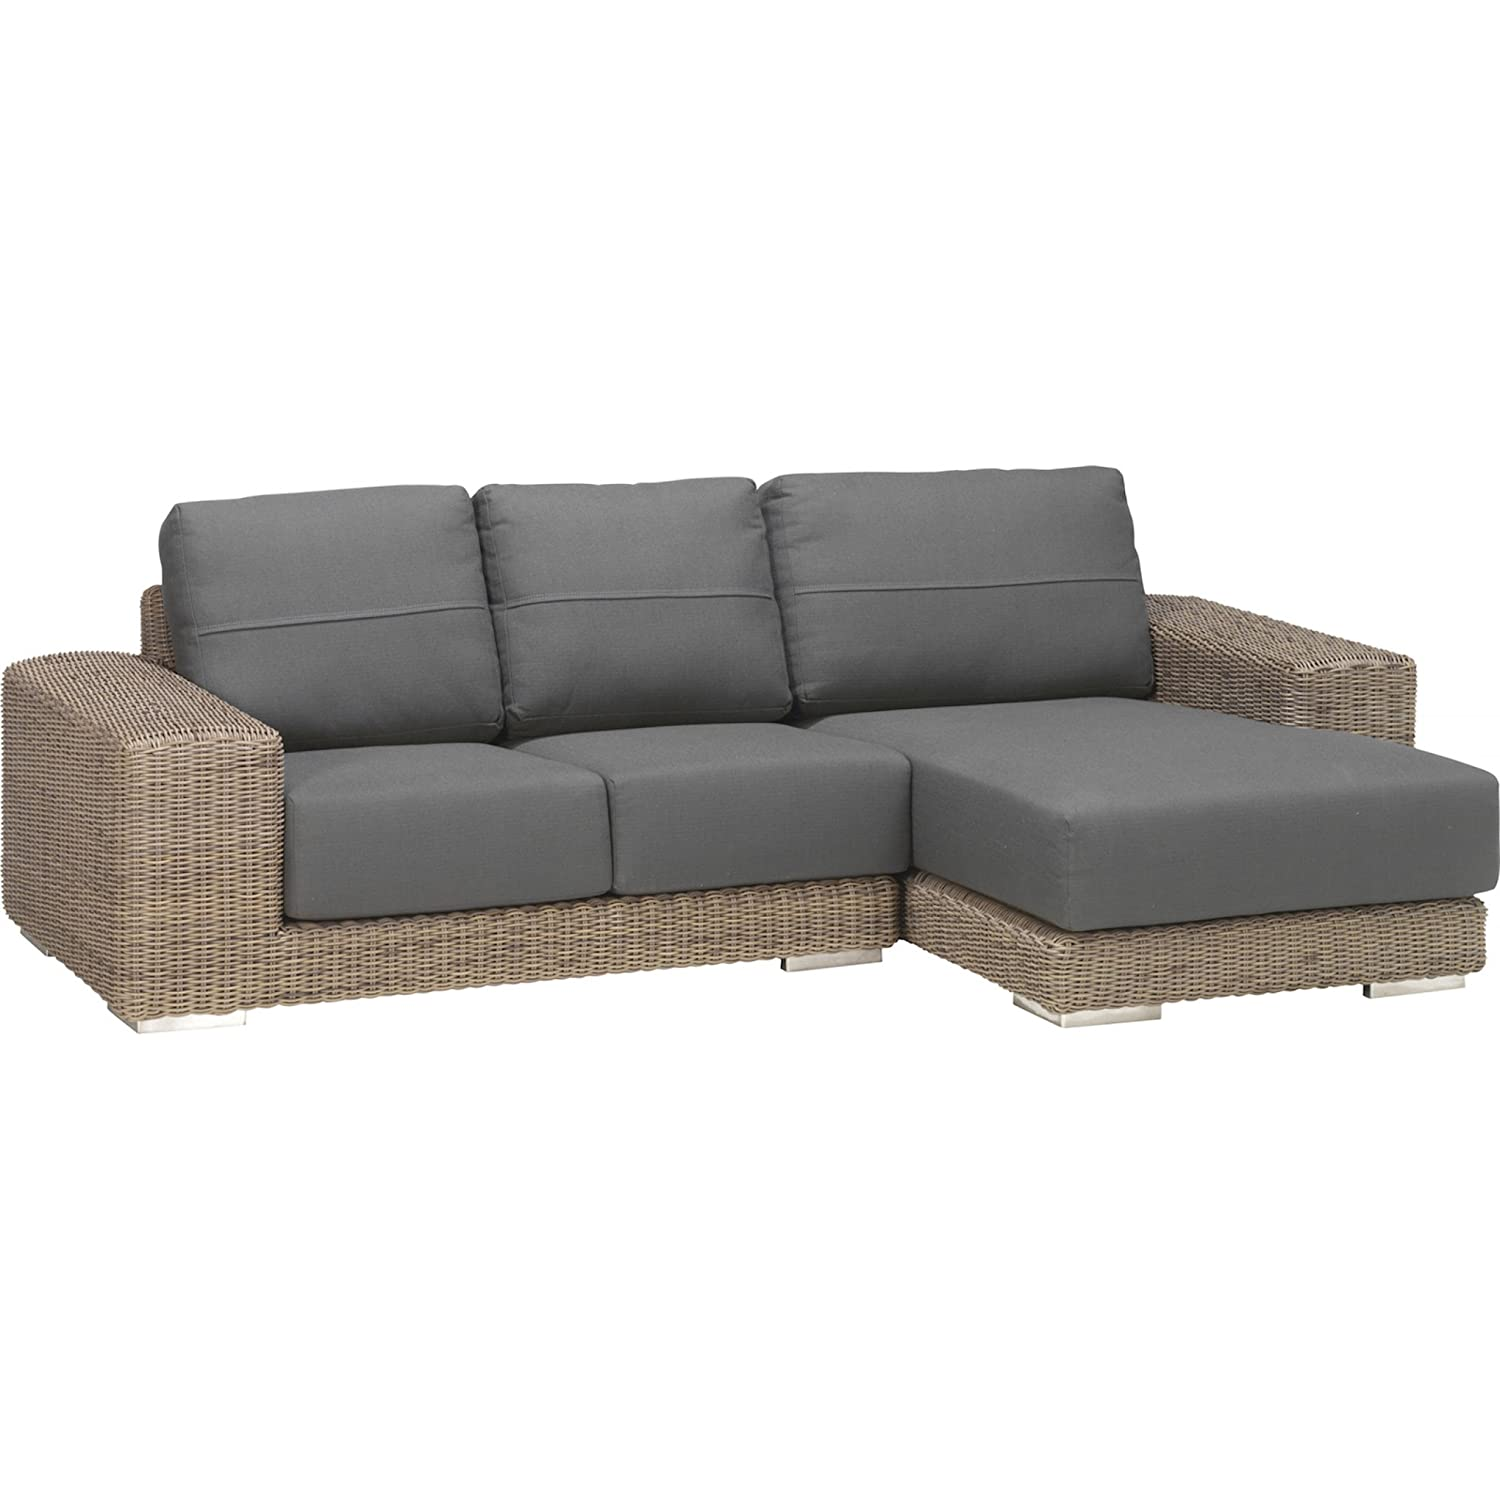 4Seasons Outdoor Kingston 2-teilige Loungegruppe Polyrattan pure inkl Kissen günstig bestellen